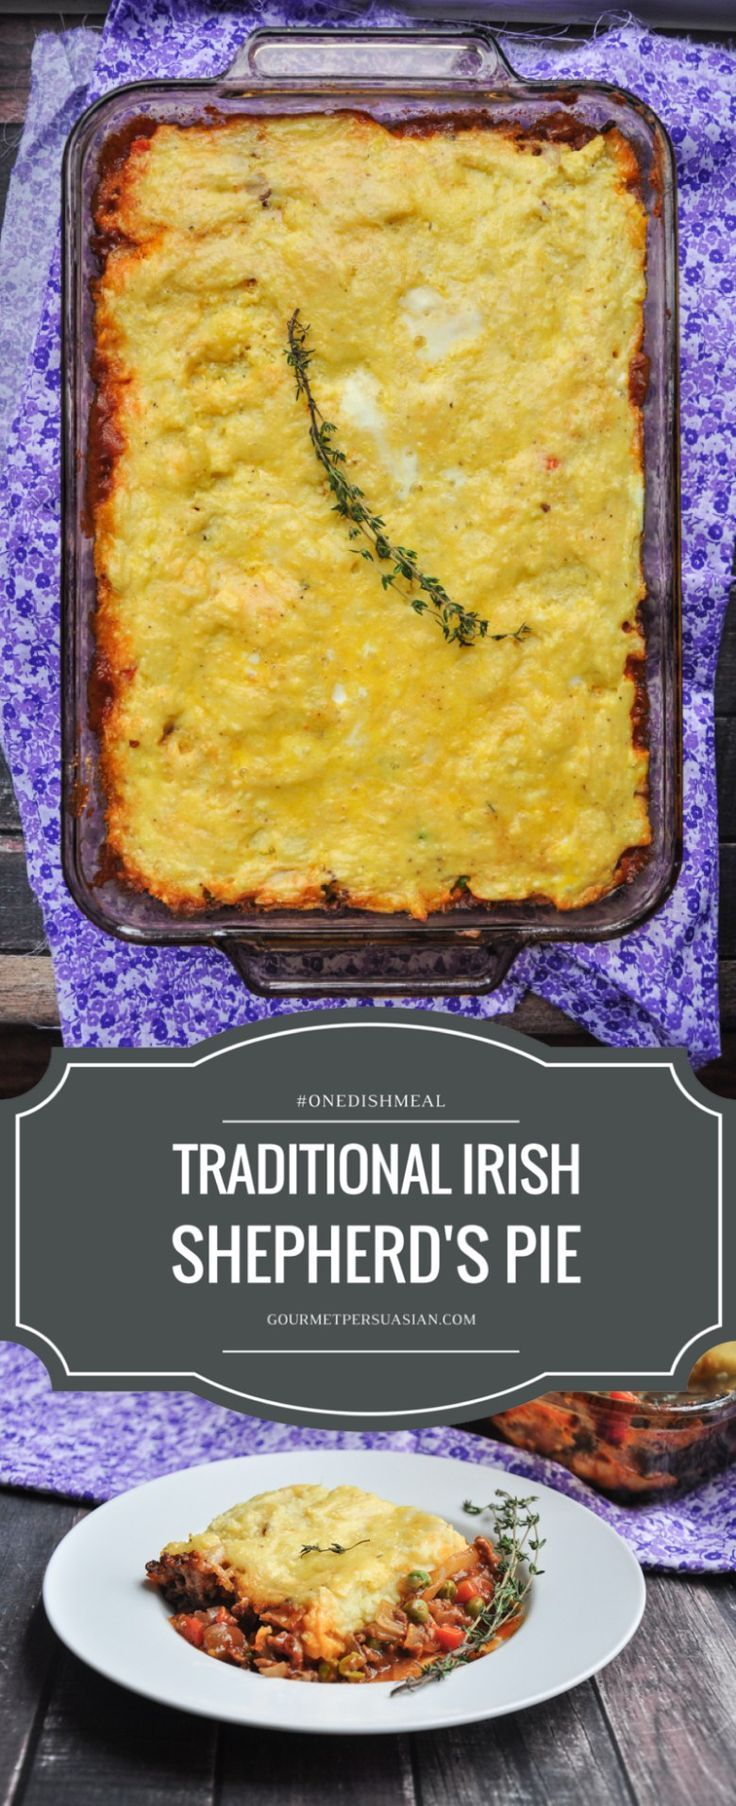 A Delicious And Healthy Traditional Irish Shepherds Pie Recipe That Will Become Staple In Your